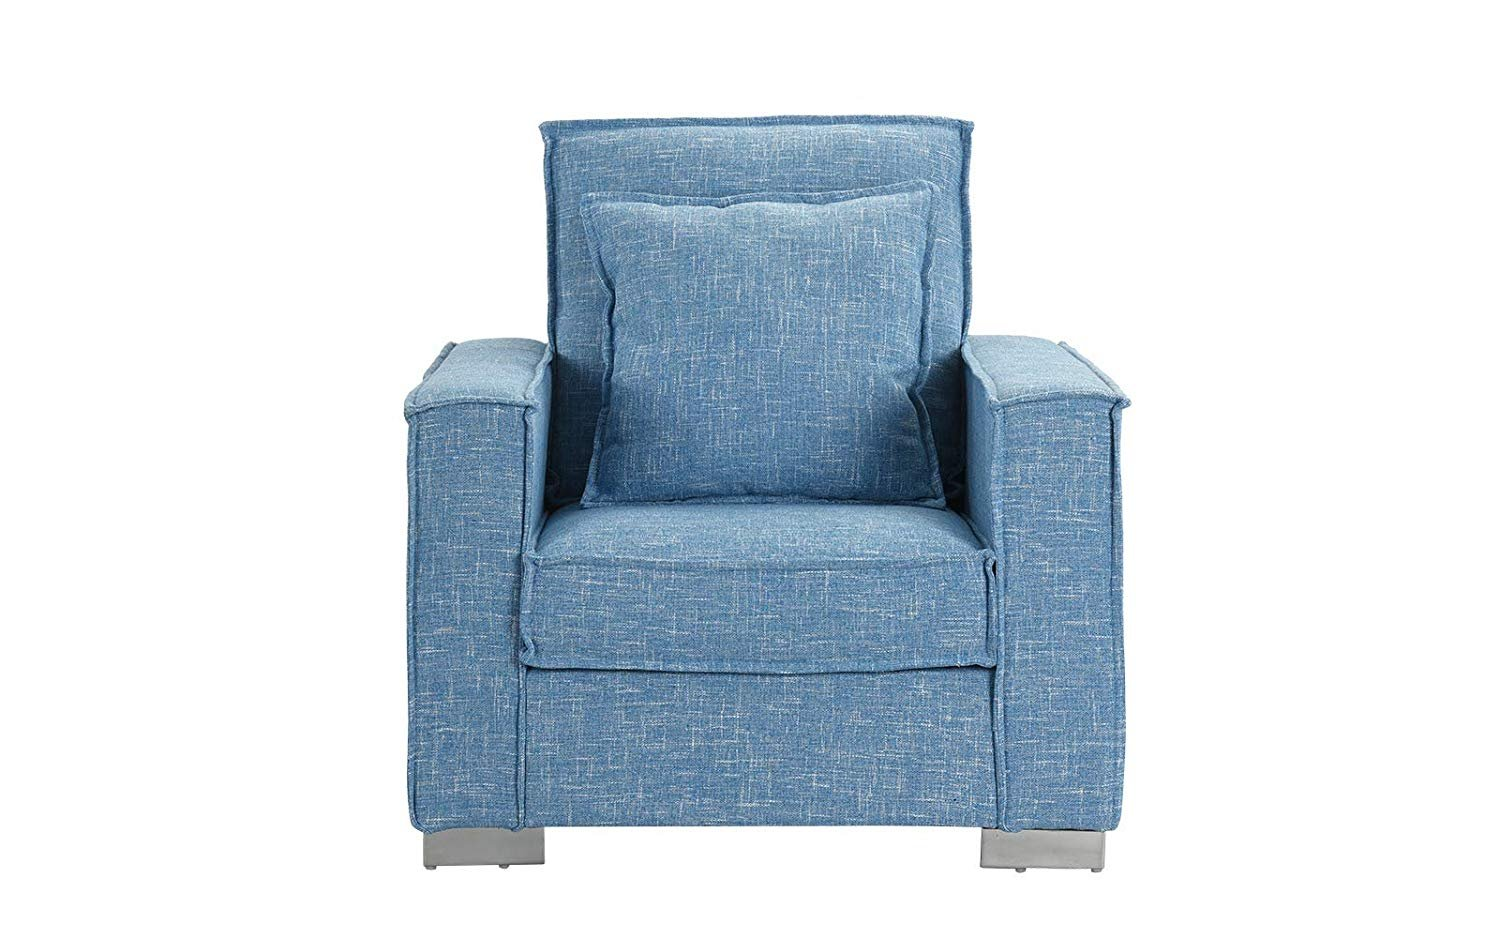 Details About Living Room Large Linen Fabric Armchair Modern Home Accent Chair Light Blue